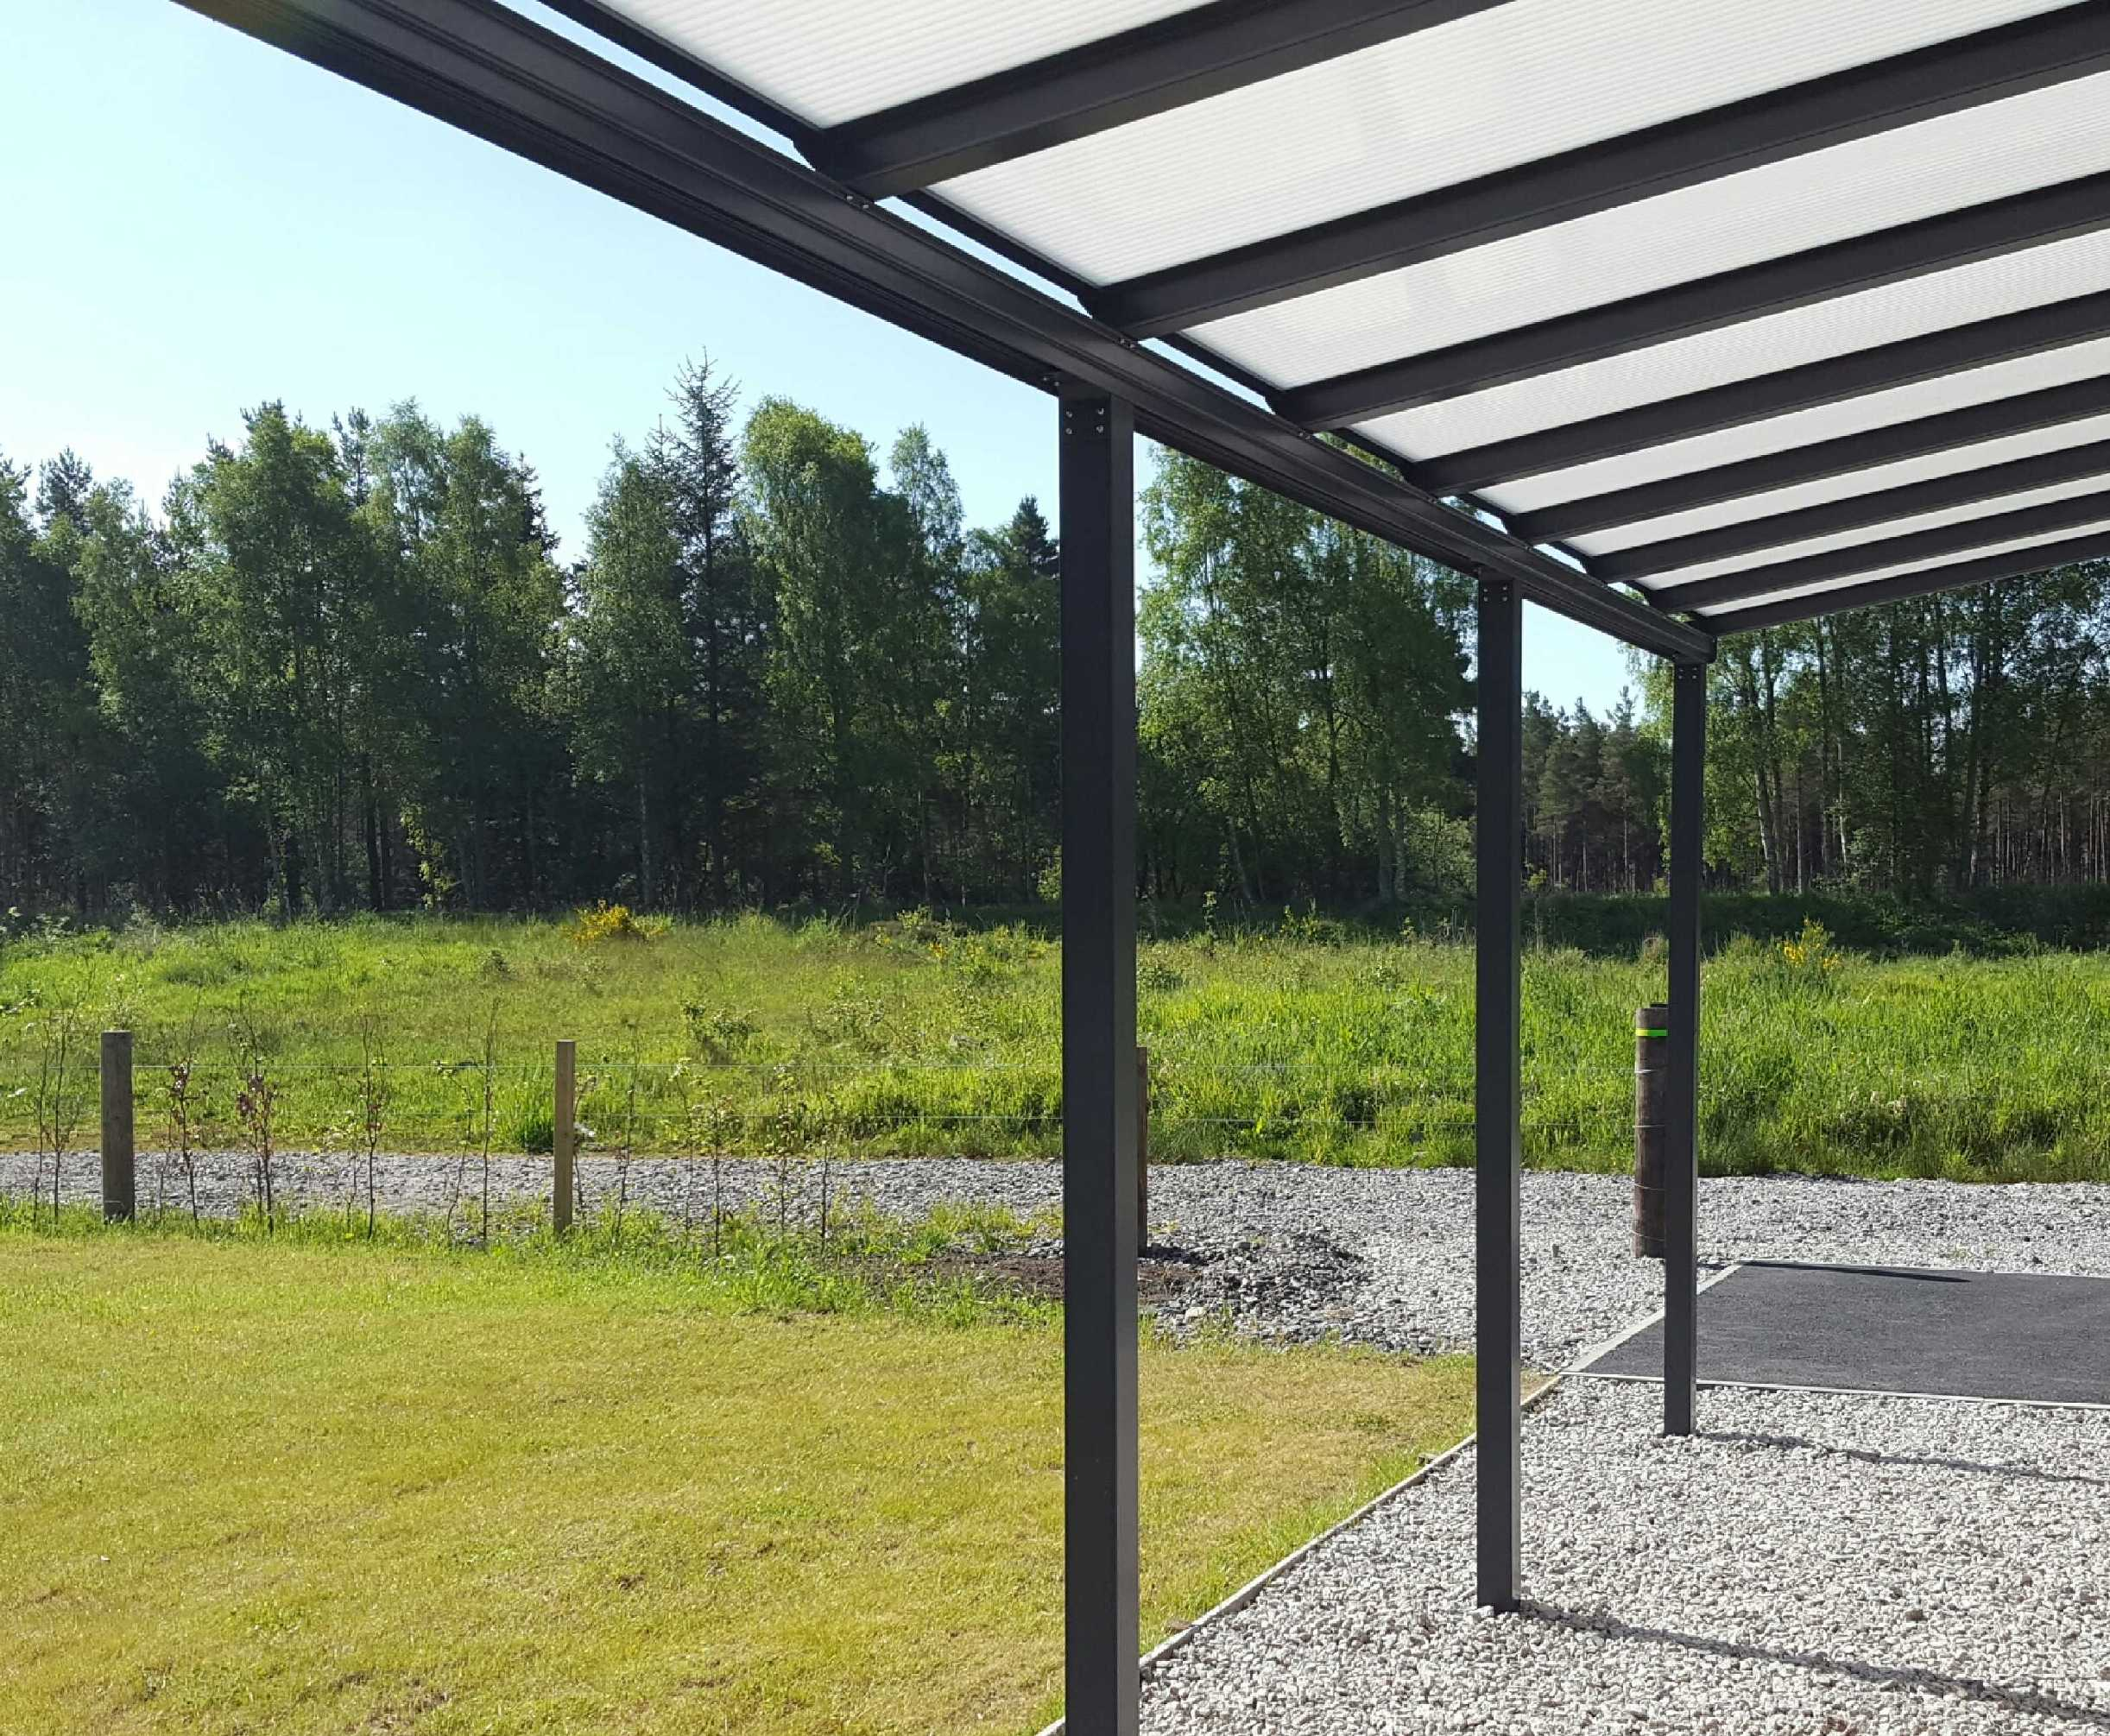 Omega Smart Lean-To Canopy, Anthracite Grey, 16mm Polycarbonate Glazing - 7.4m (W) x 2.0m (P), (4) Supporting Posts